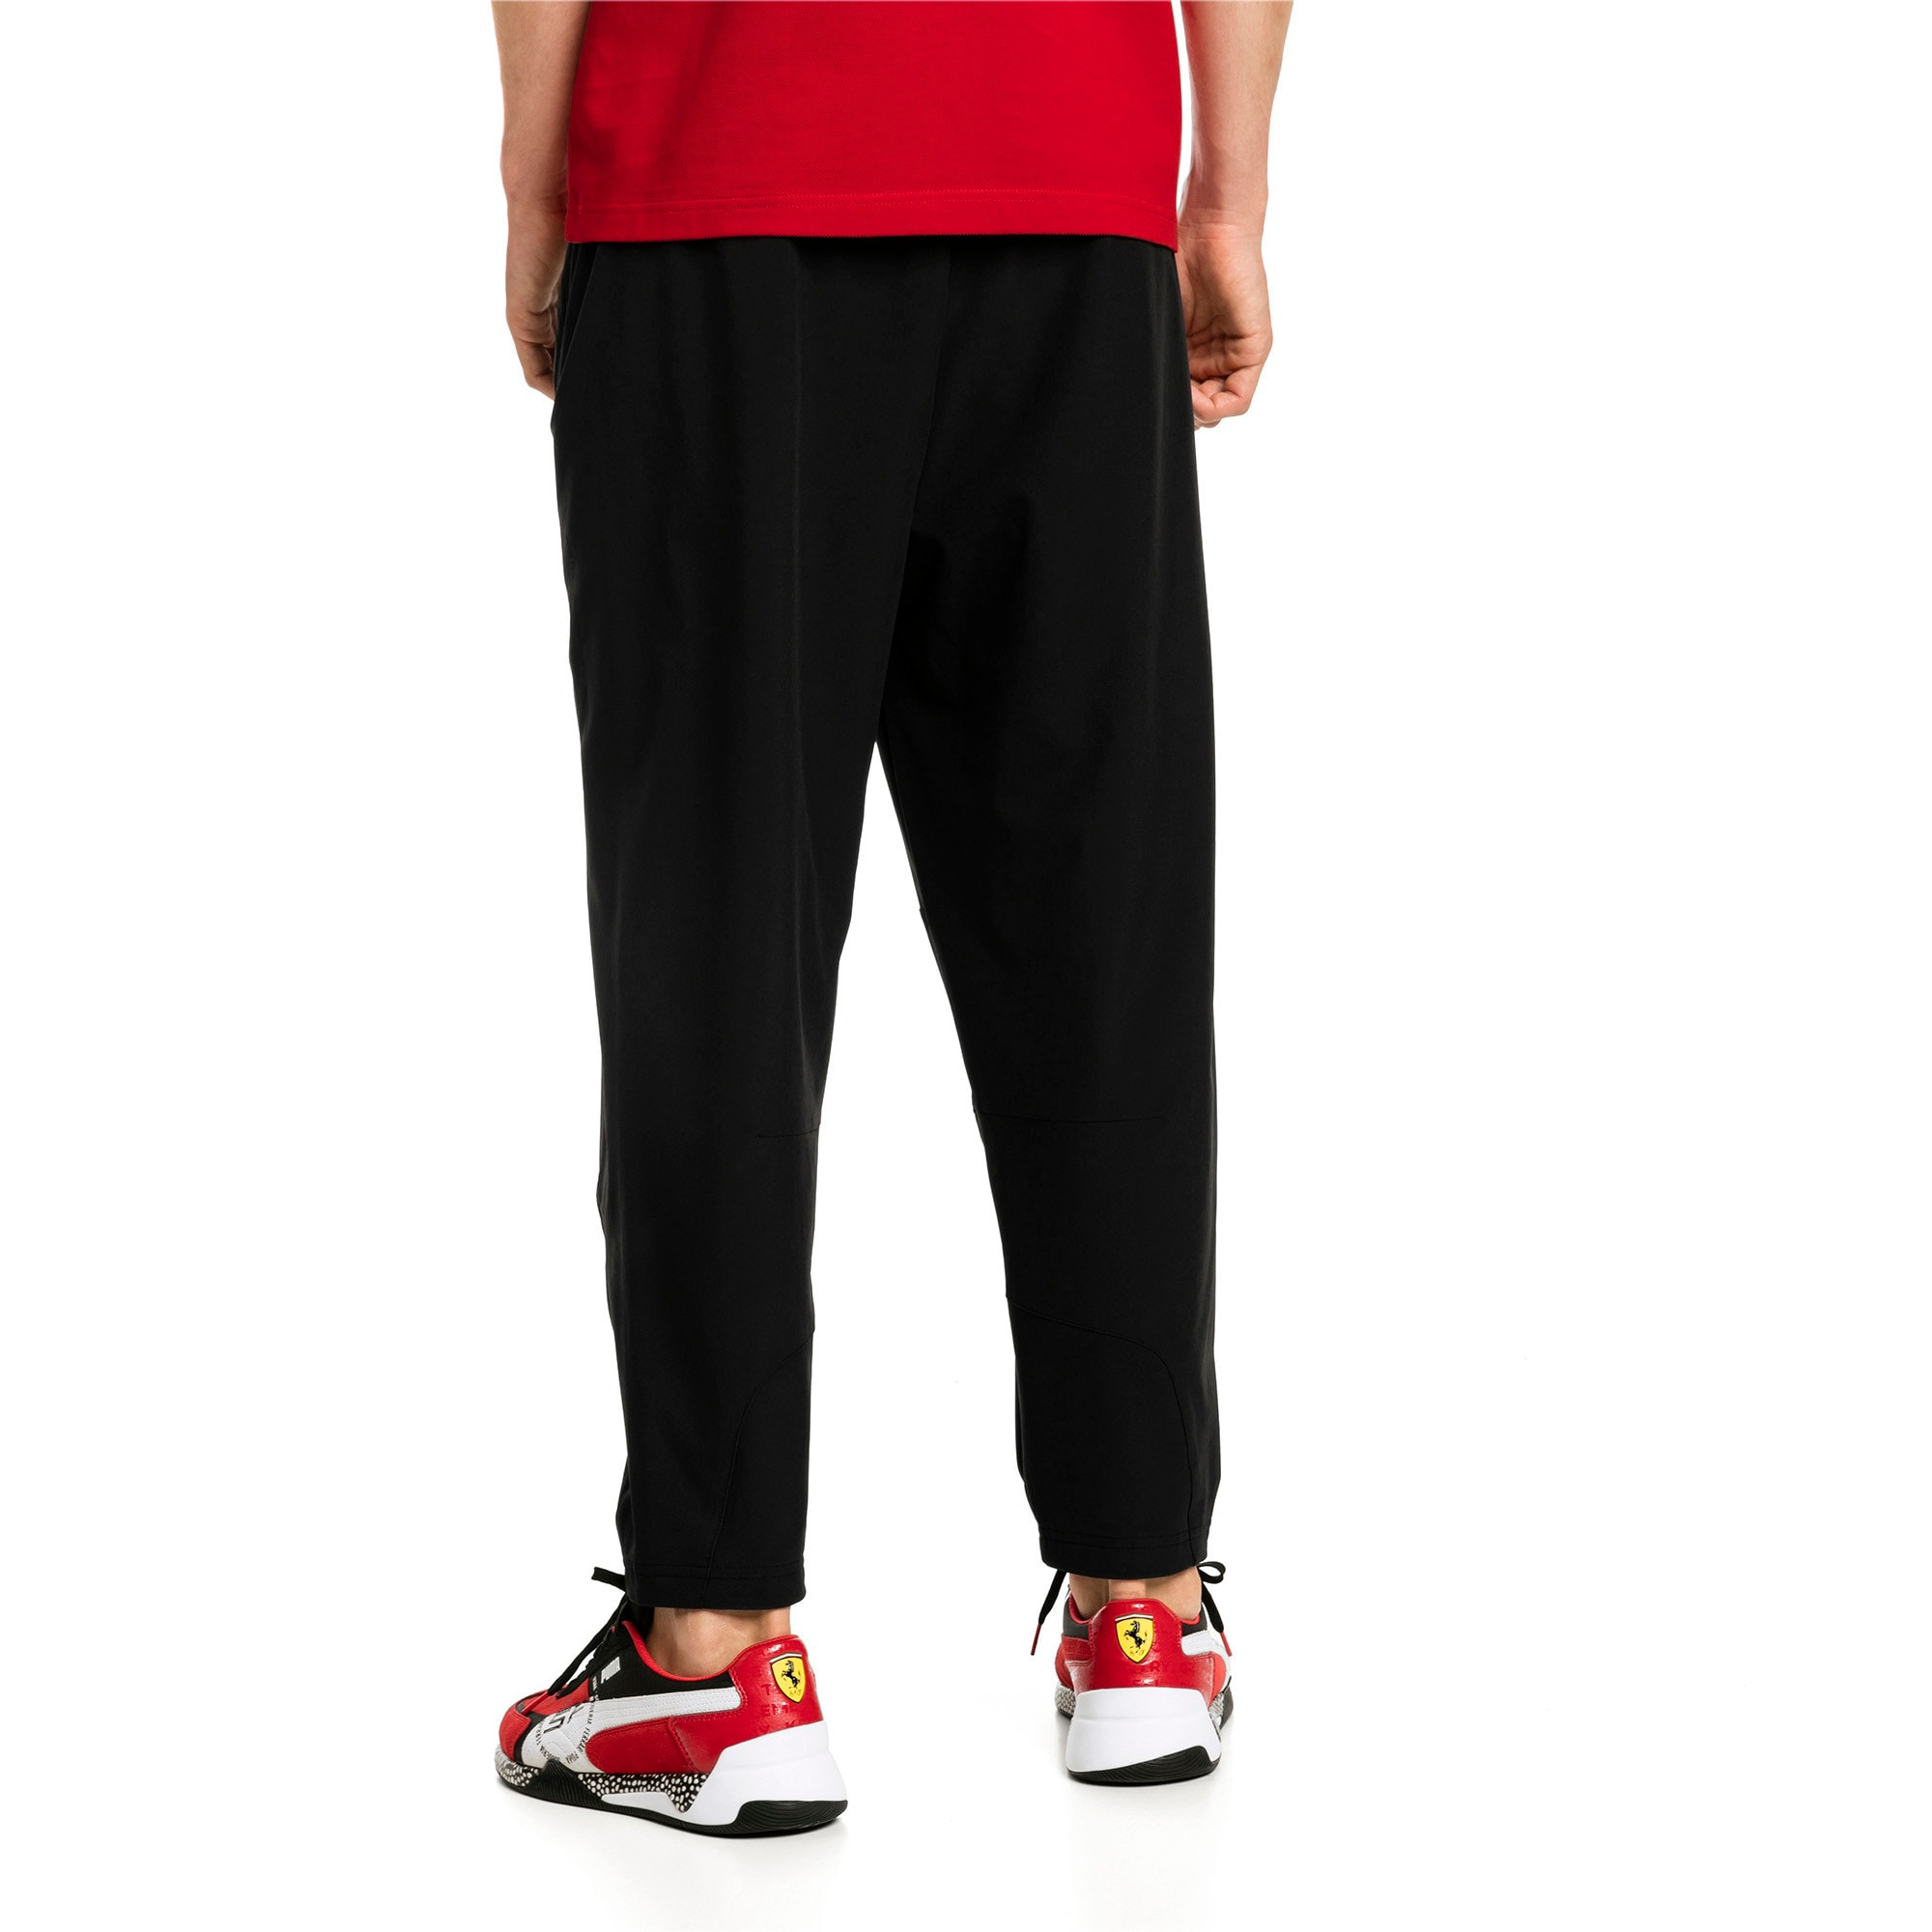 Thumbnail 2 of Scuderia Ferrari Life Men's Sweatpants, Puma Black, medium